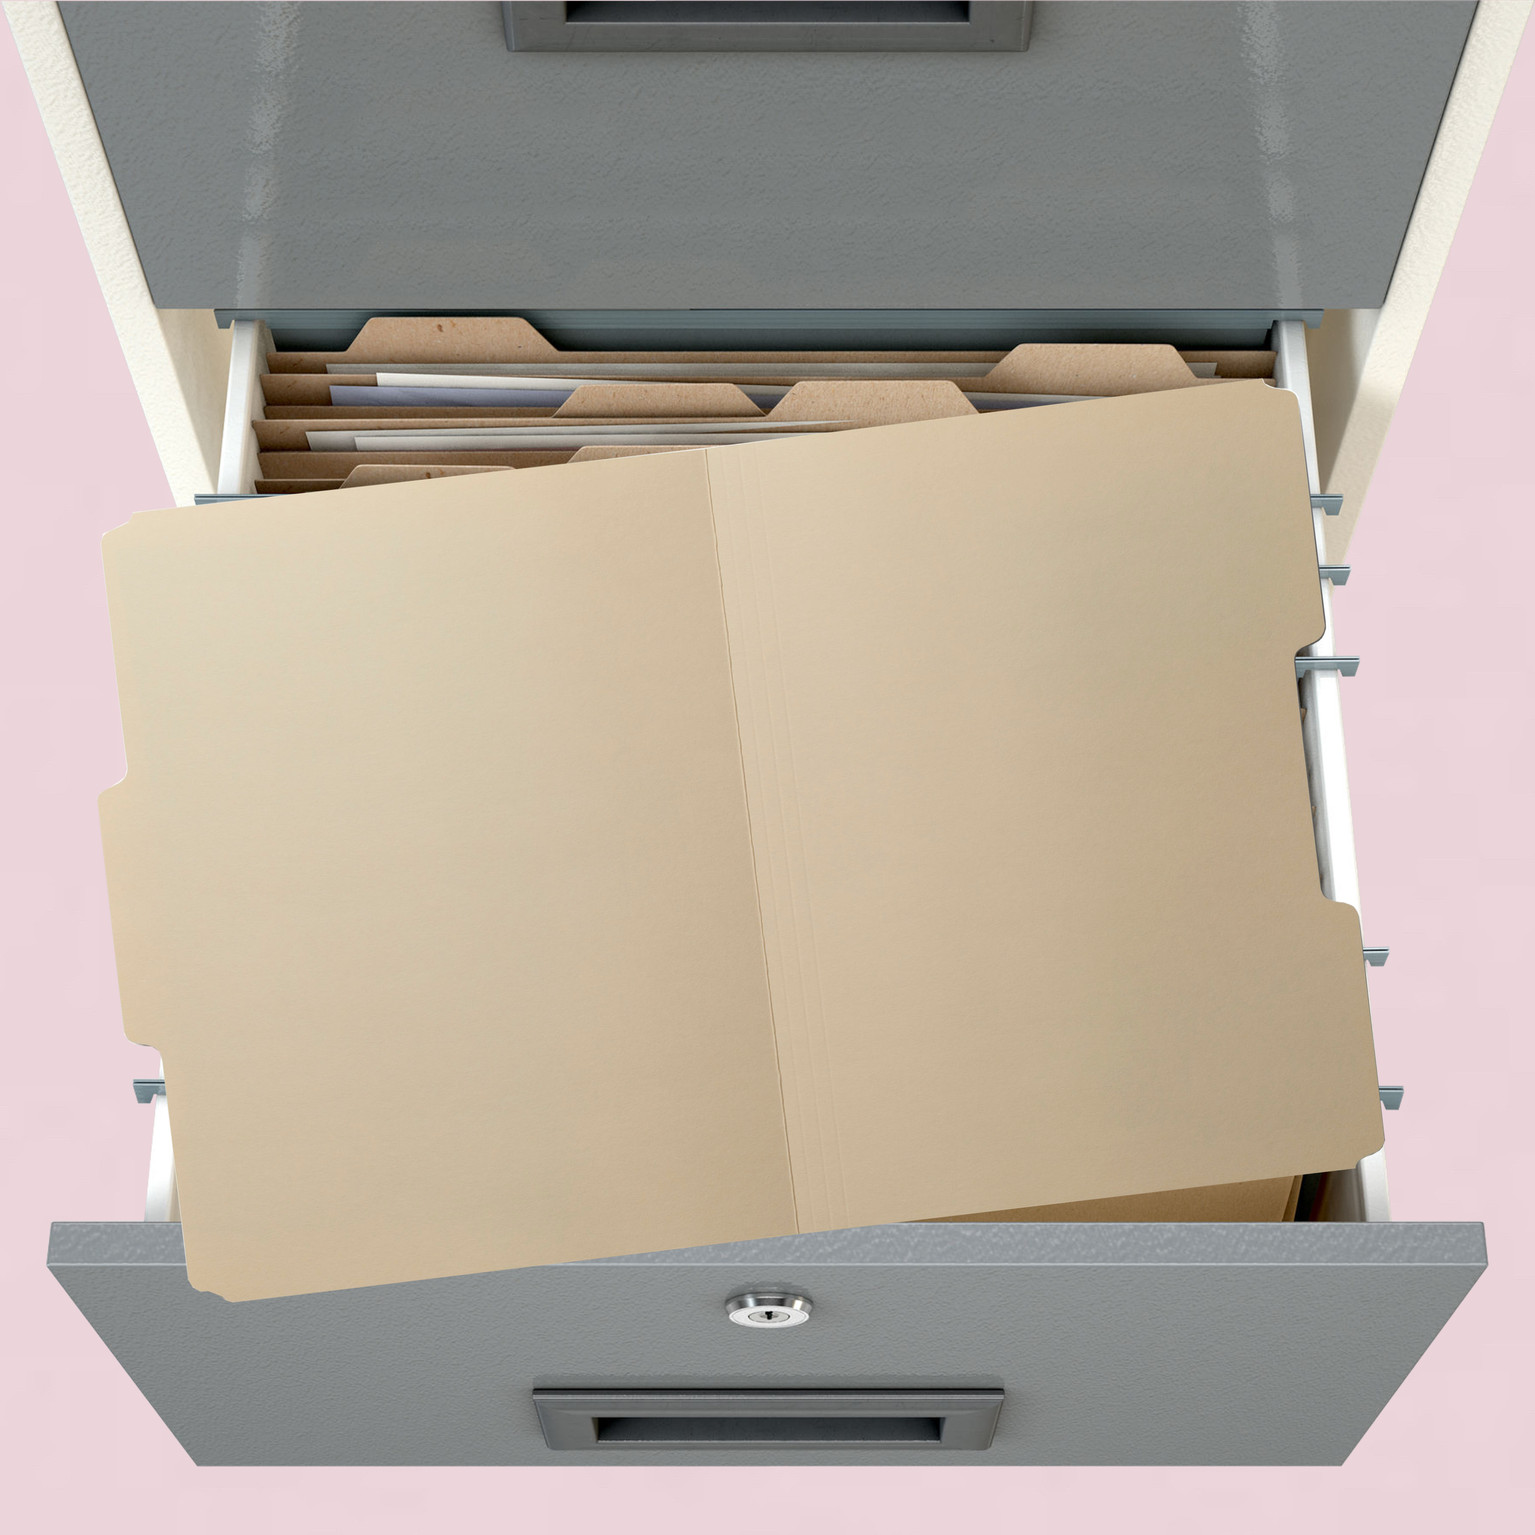 Background image of filing cabinet